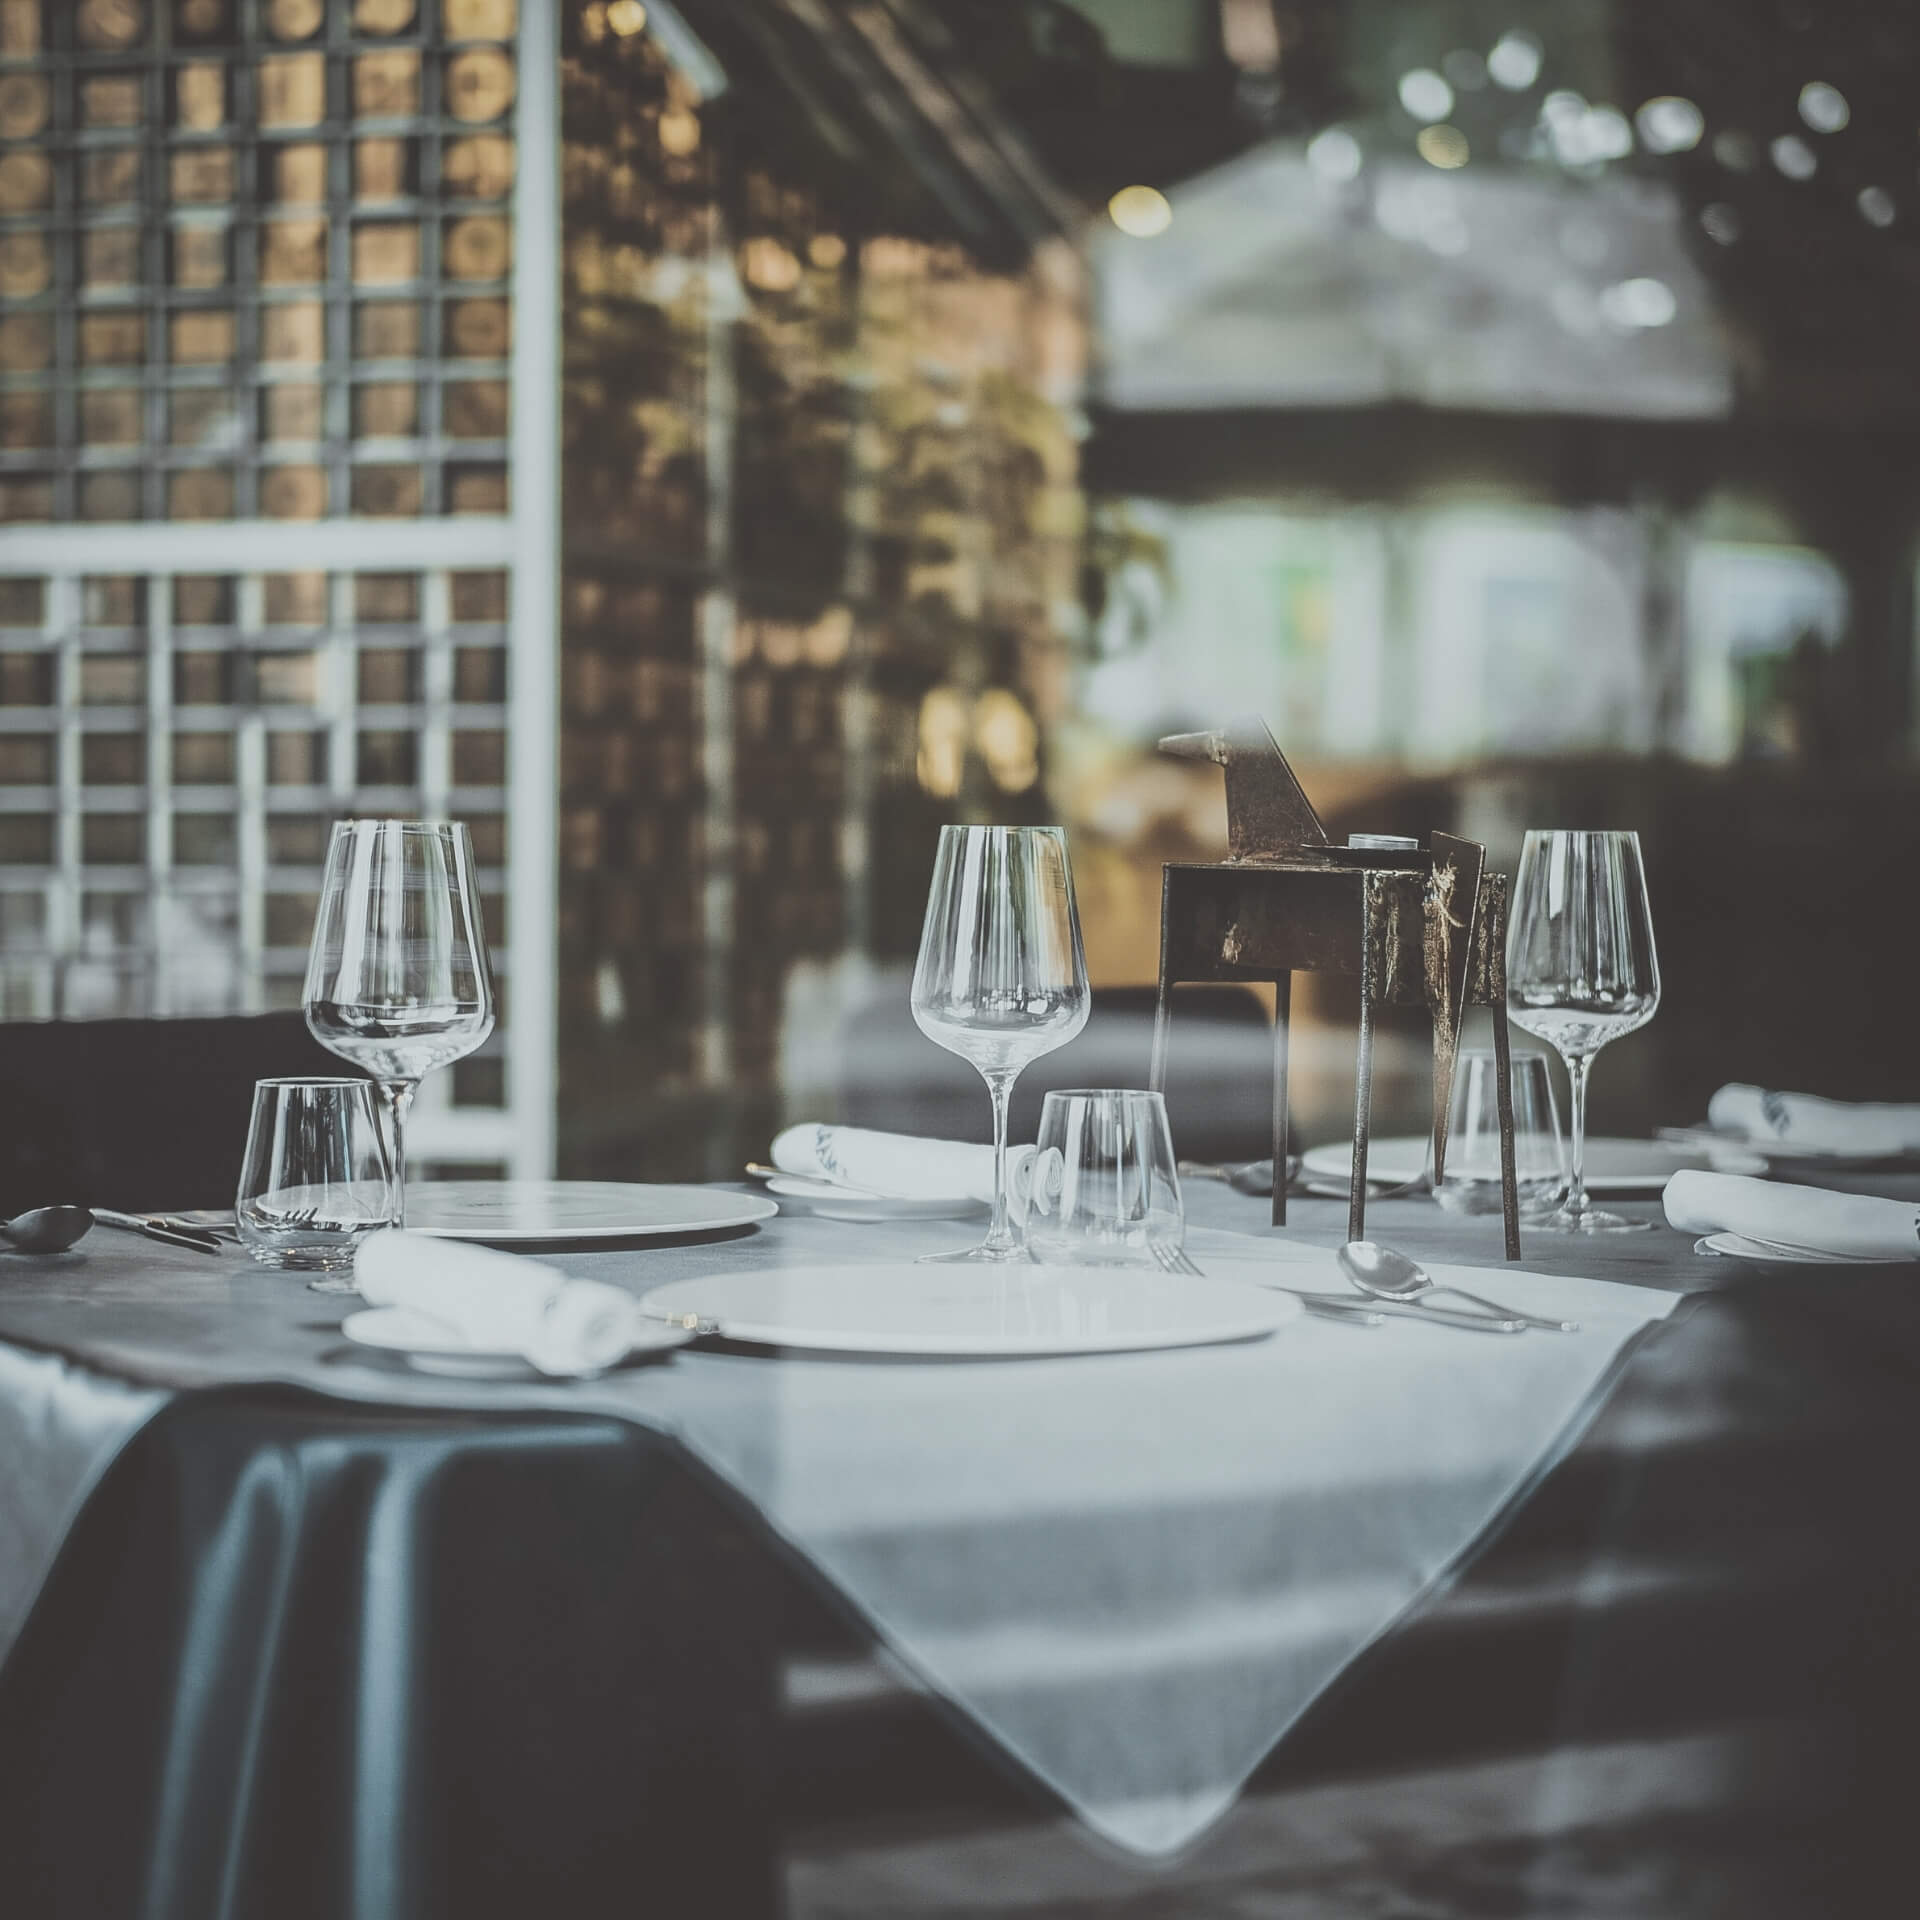 Restaurant Website: Nice table setting at a restaurant